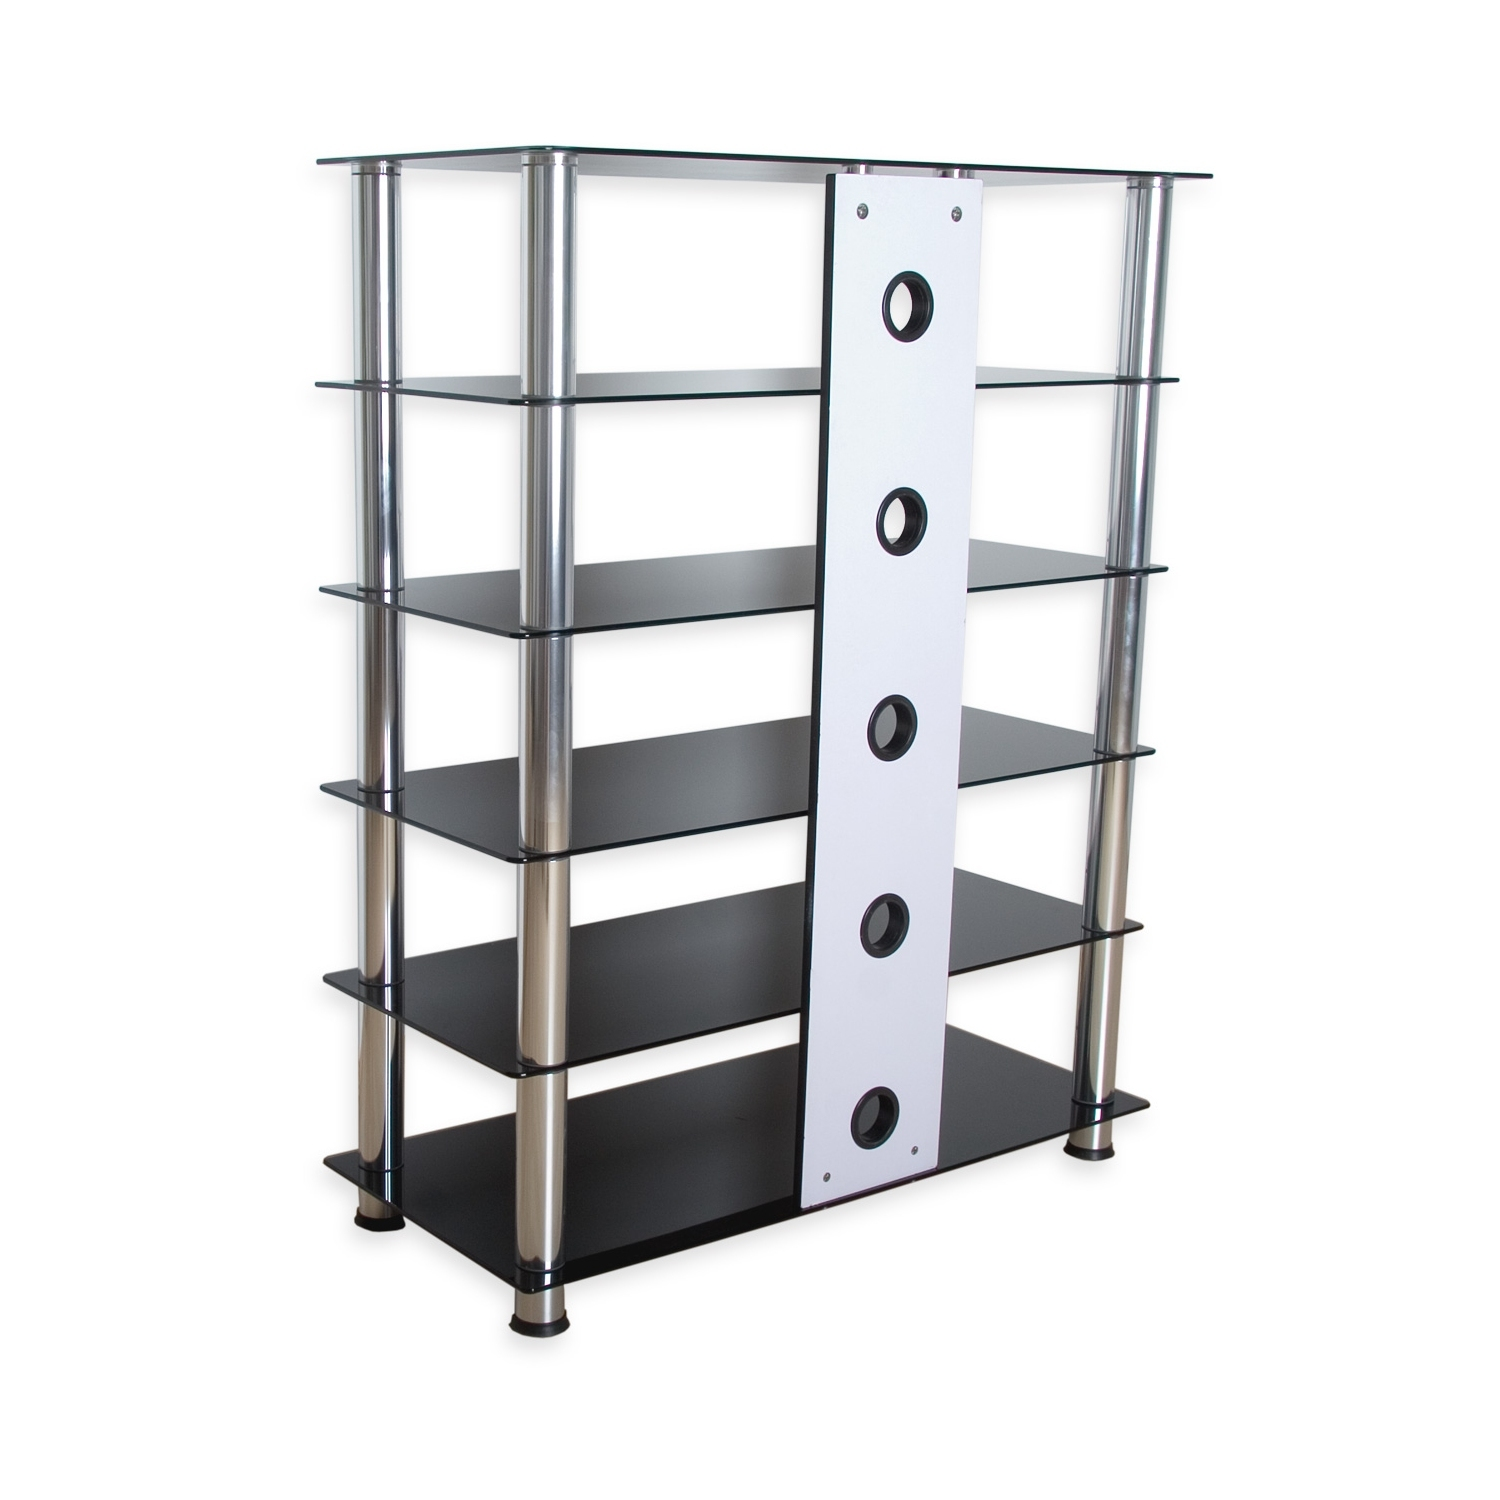 stilista tv rack wardrobe stand furniture shelf rack hifi audio glass fantasia ebay. Black Bedroom Furniture Sets. Home Design Ideas